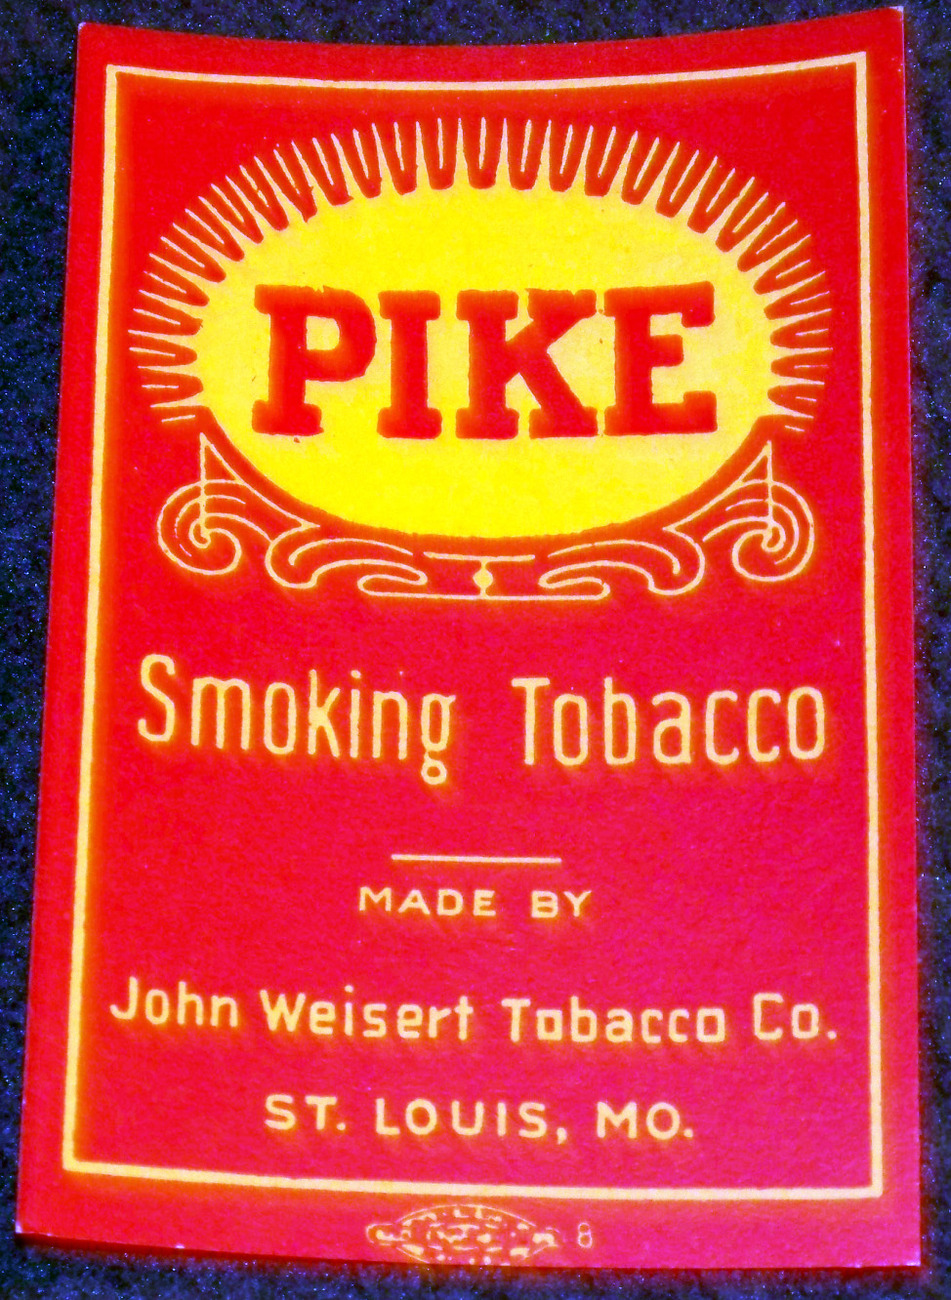 Pike tobacoo label 001